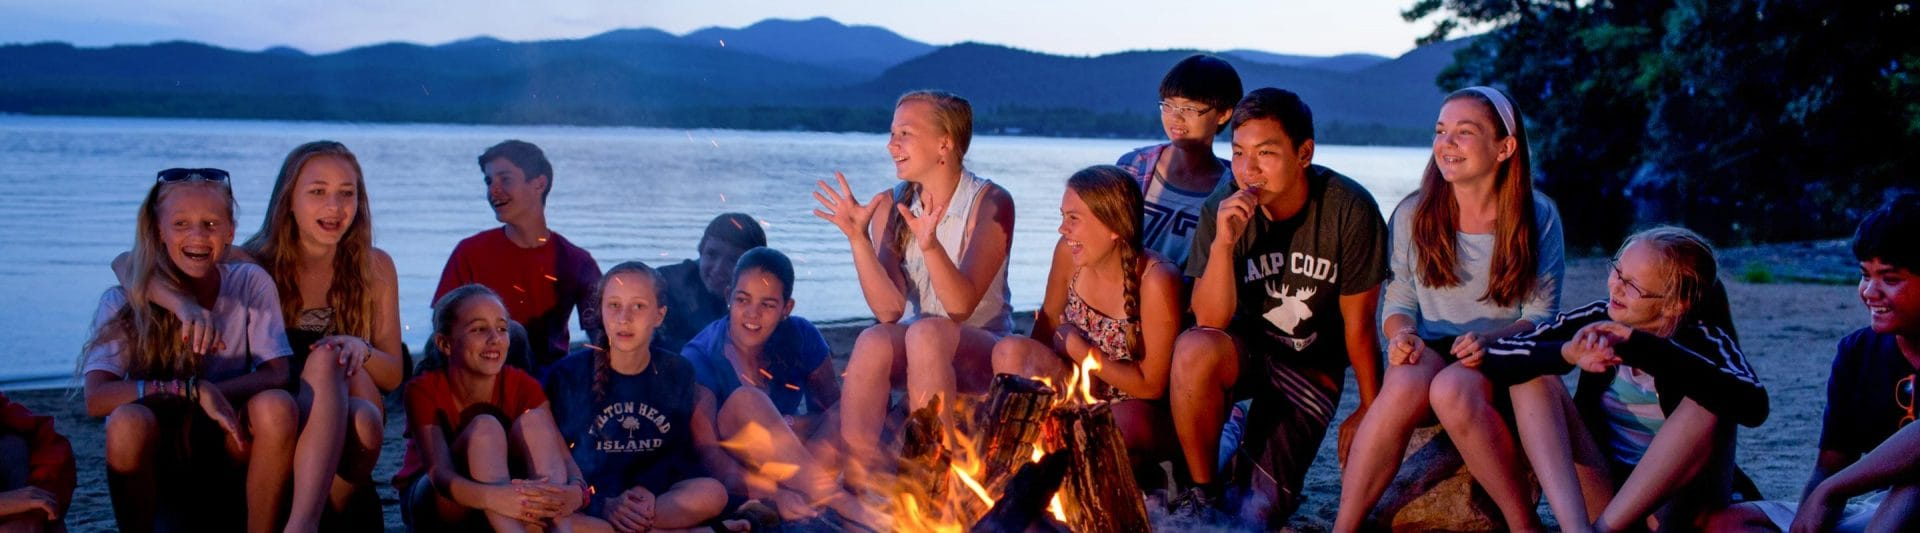 campers smiling around a campfire